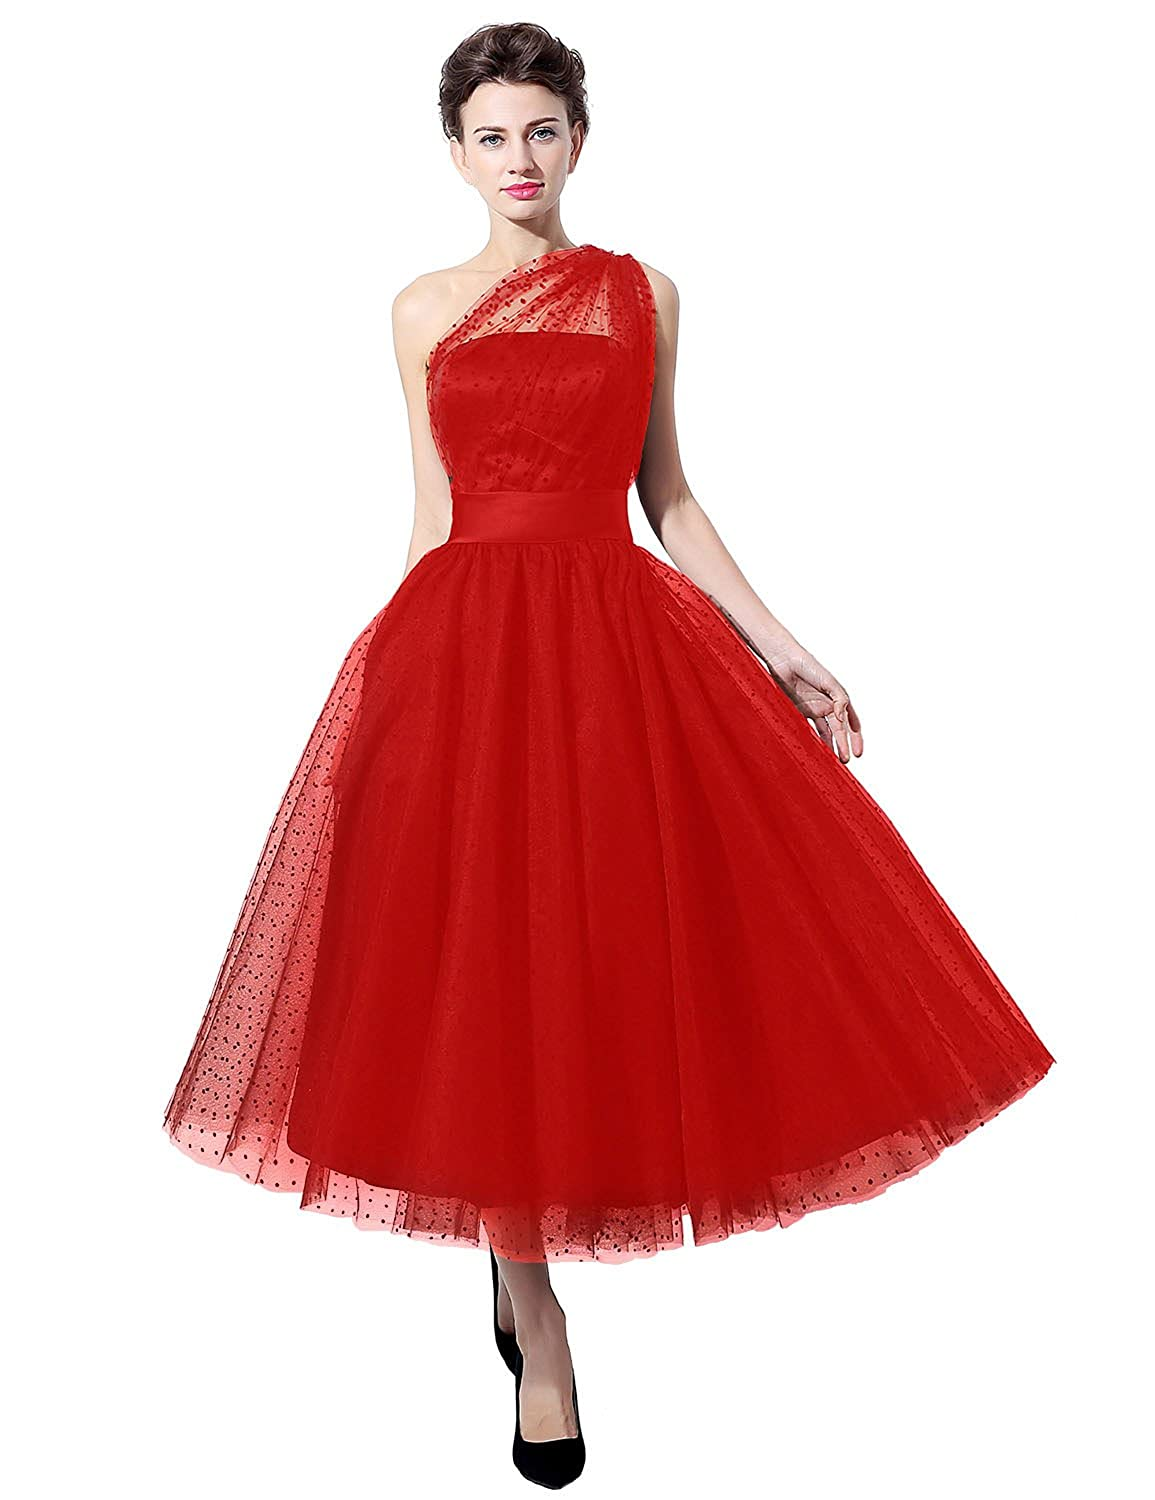 Sarahbridal Vintage Prom Dress Tea Length One Shoulder Bridesmaid SD 337 red uk16